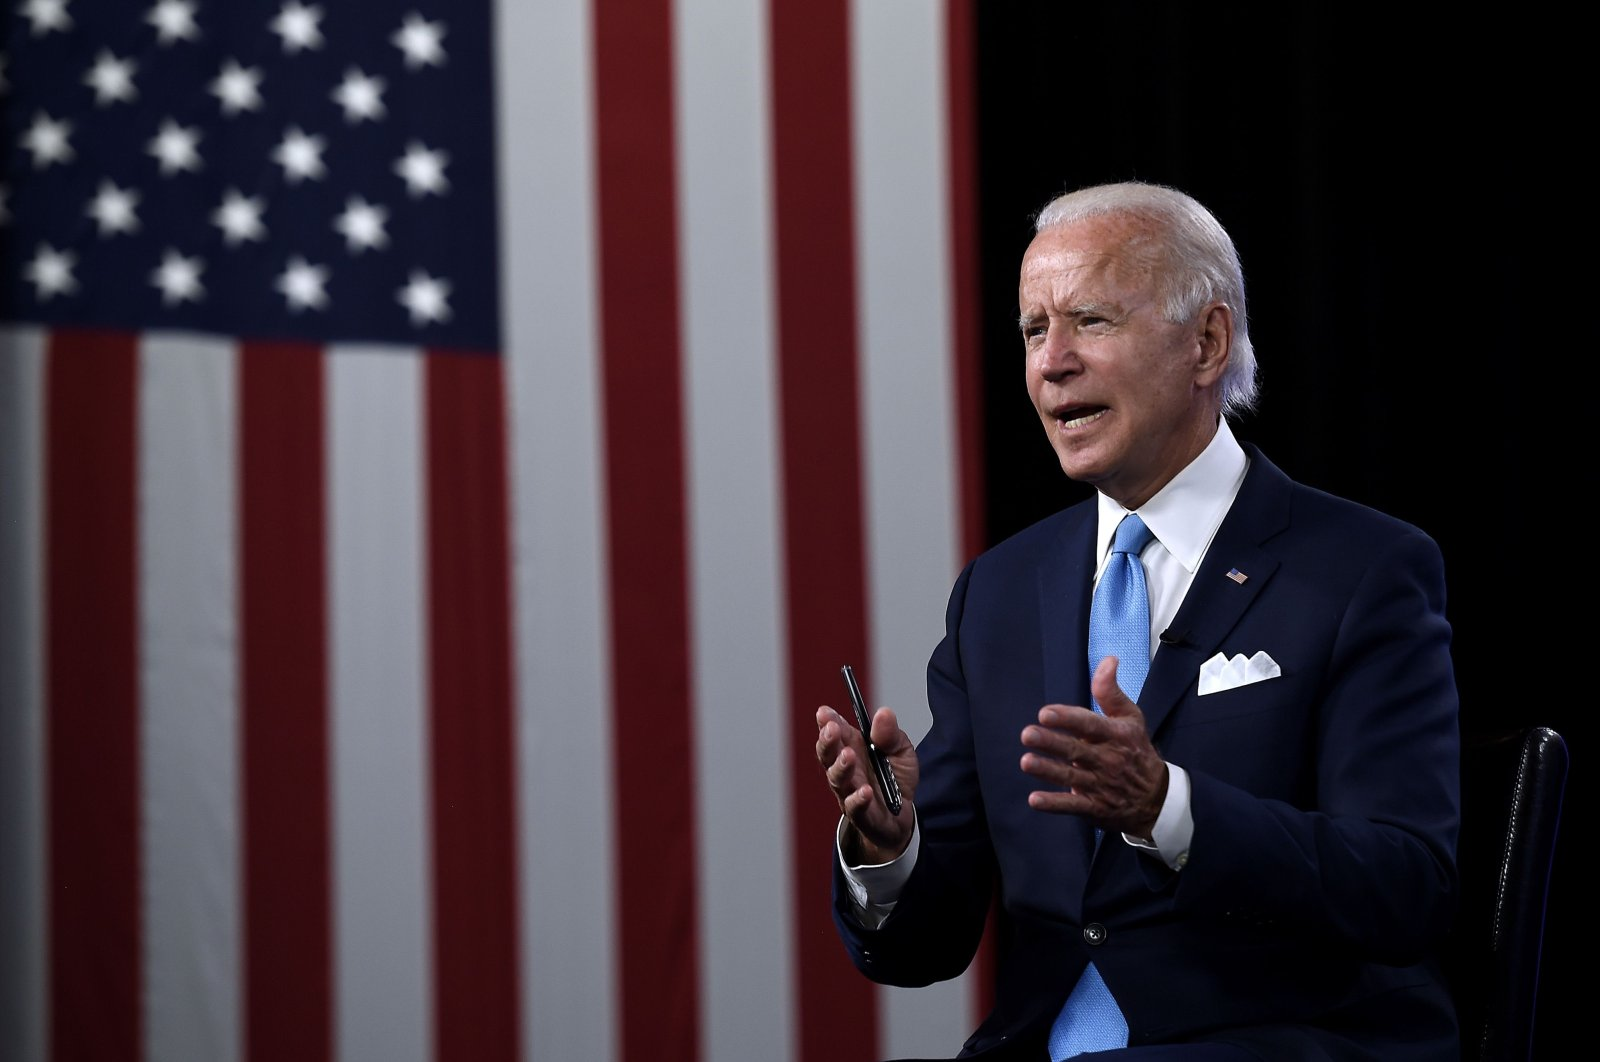 Democratic presidential nominee and former U.S. Vice President Joe Biden speaks at a virtual grassroots fundraiser at the Hotel du Pont in Wilmington, Delaware, Aug. 12, 2020. (AFP Photo)